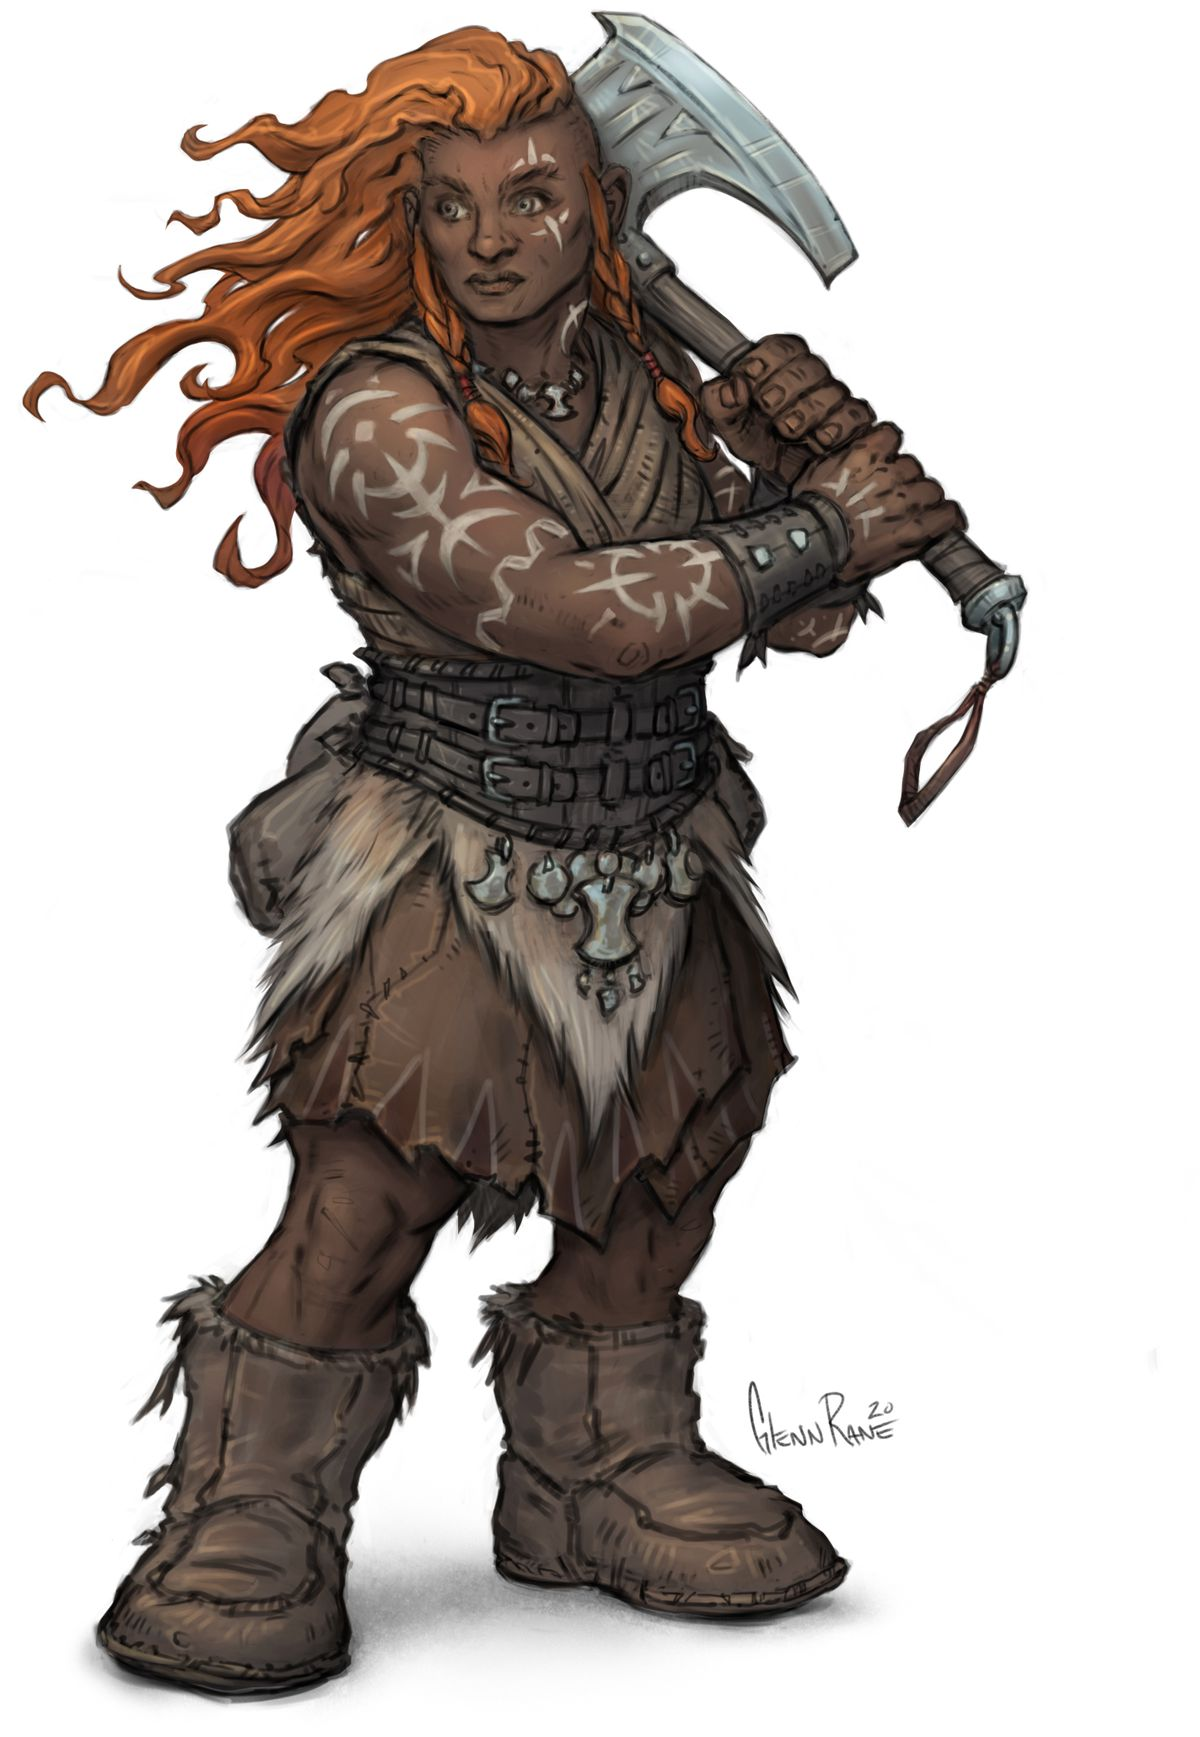 A female dwarf with long red hair. She's dressed in furs and carries a large axe.